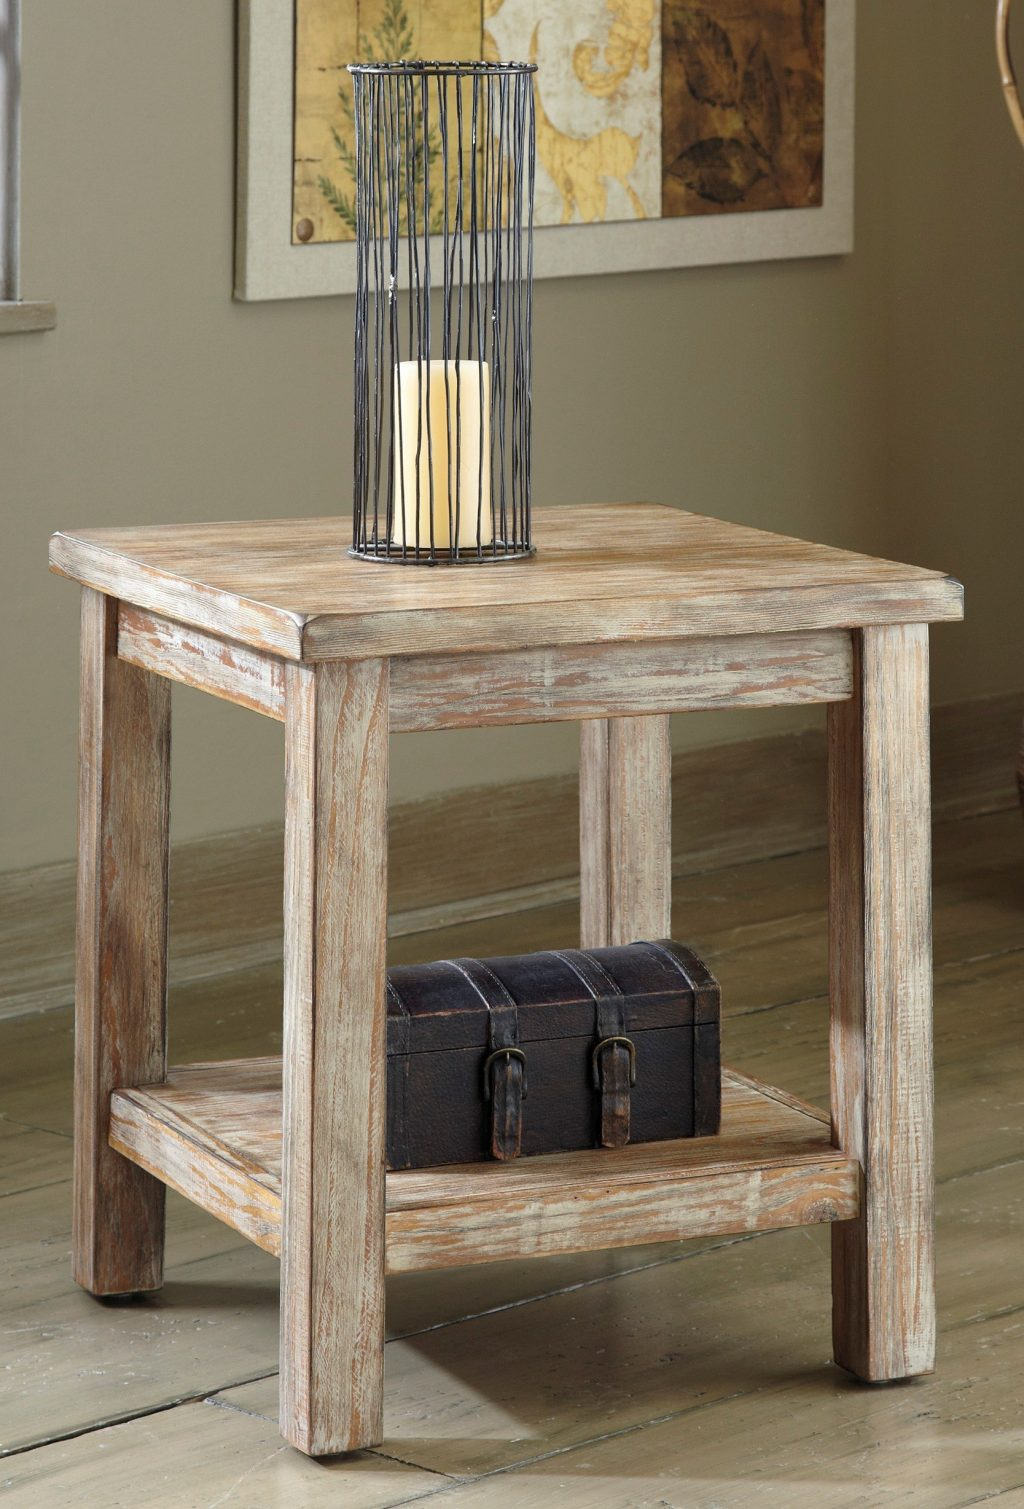 trunk end table target probably terrific great white oak living room rustic tables design roy home cherry wood small accent chairs ethan allen country french desk baker furniture